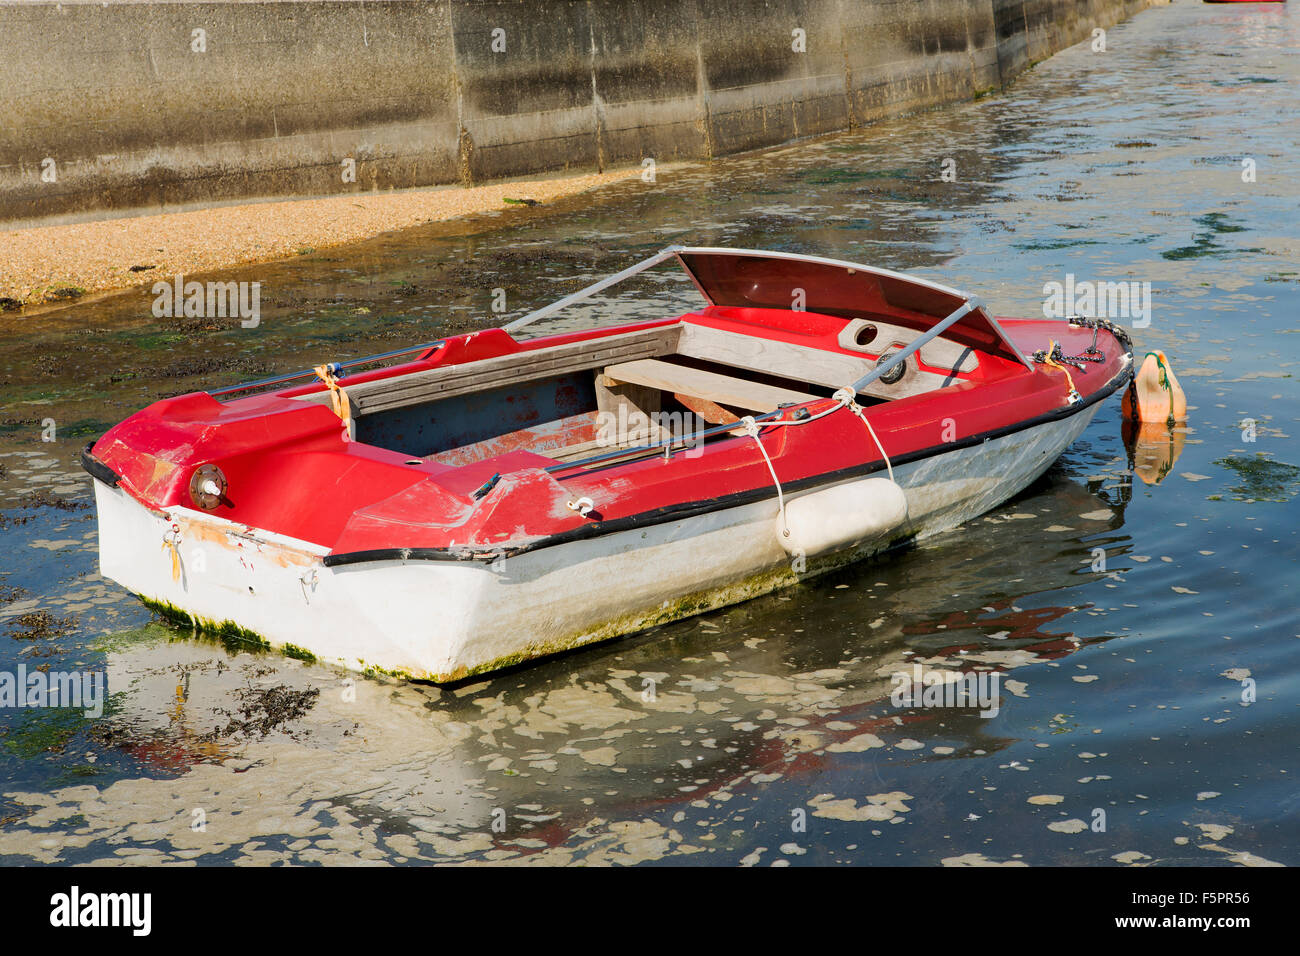 Sad looking speedboat, clearly in need of some TLC. Red and white boat only just afloat in murky water - Stock Image